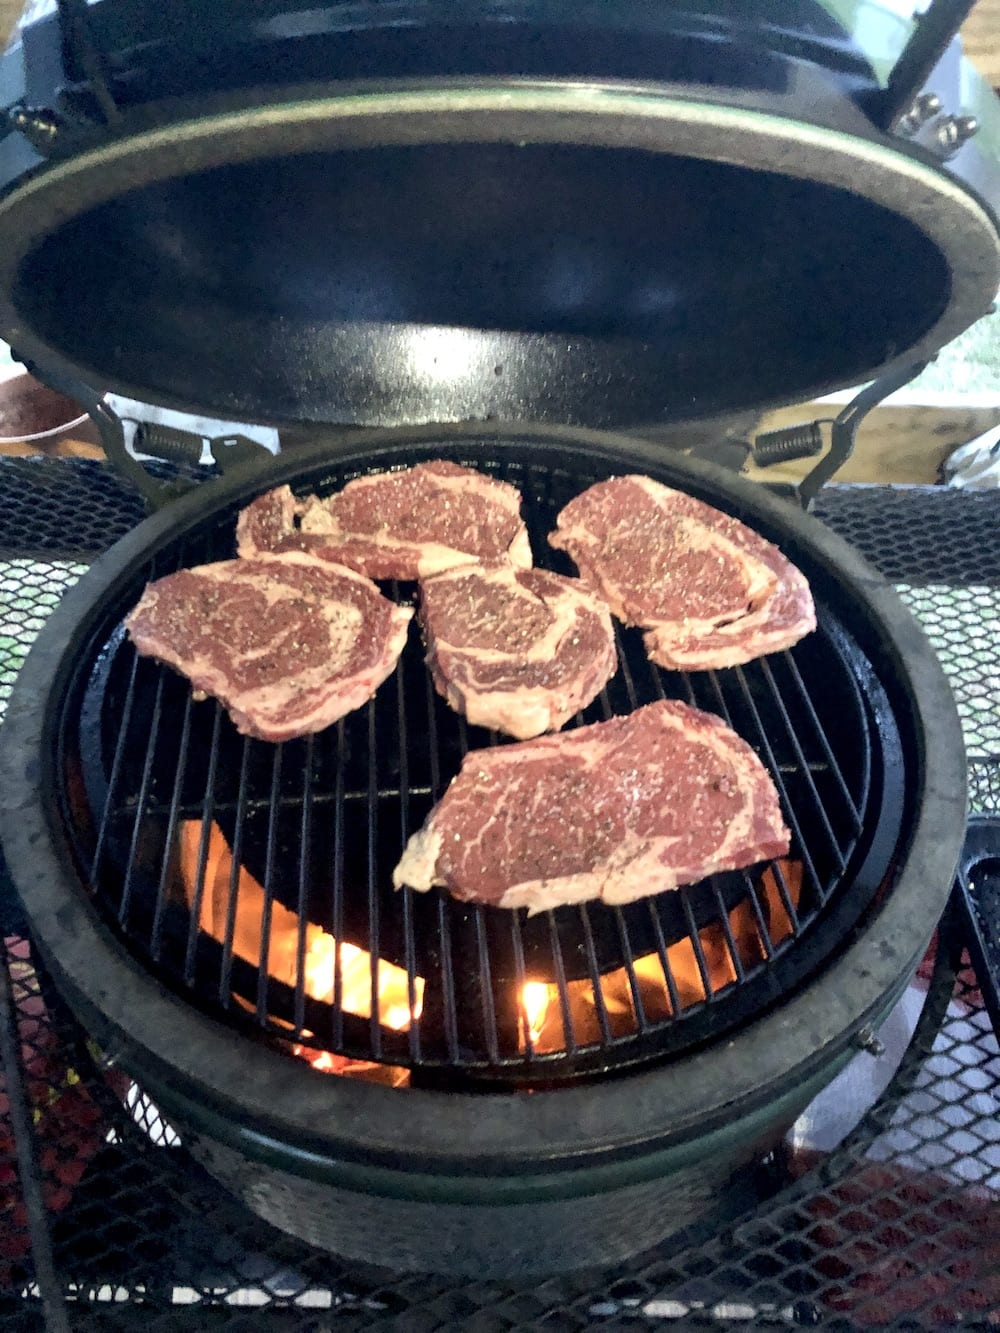 Cooking steaks on a Big Green Egg Grill